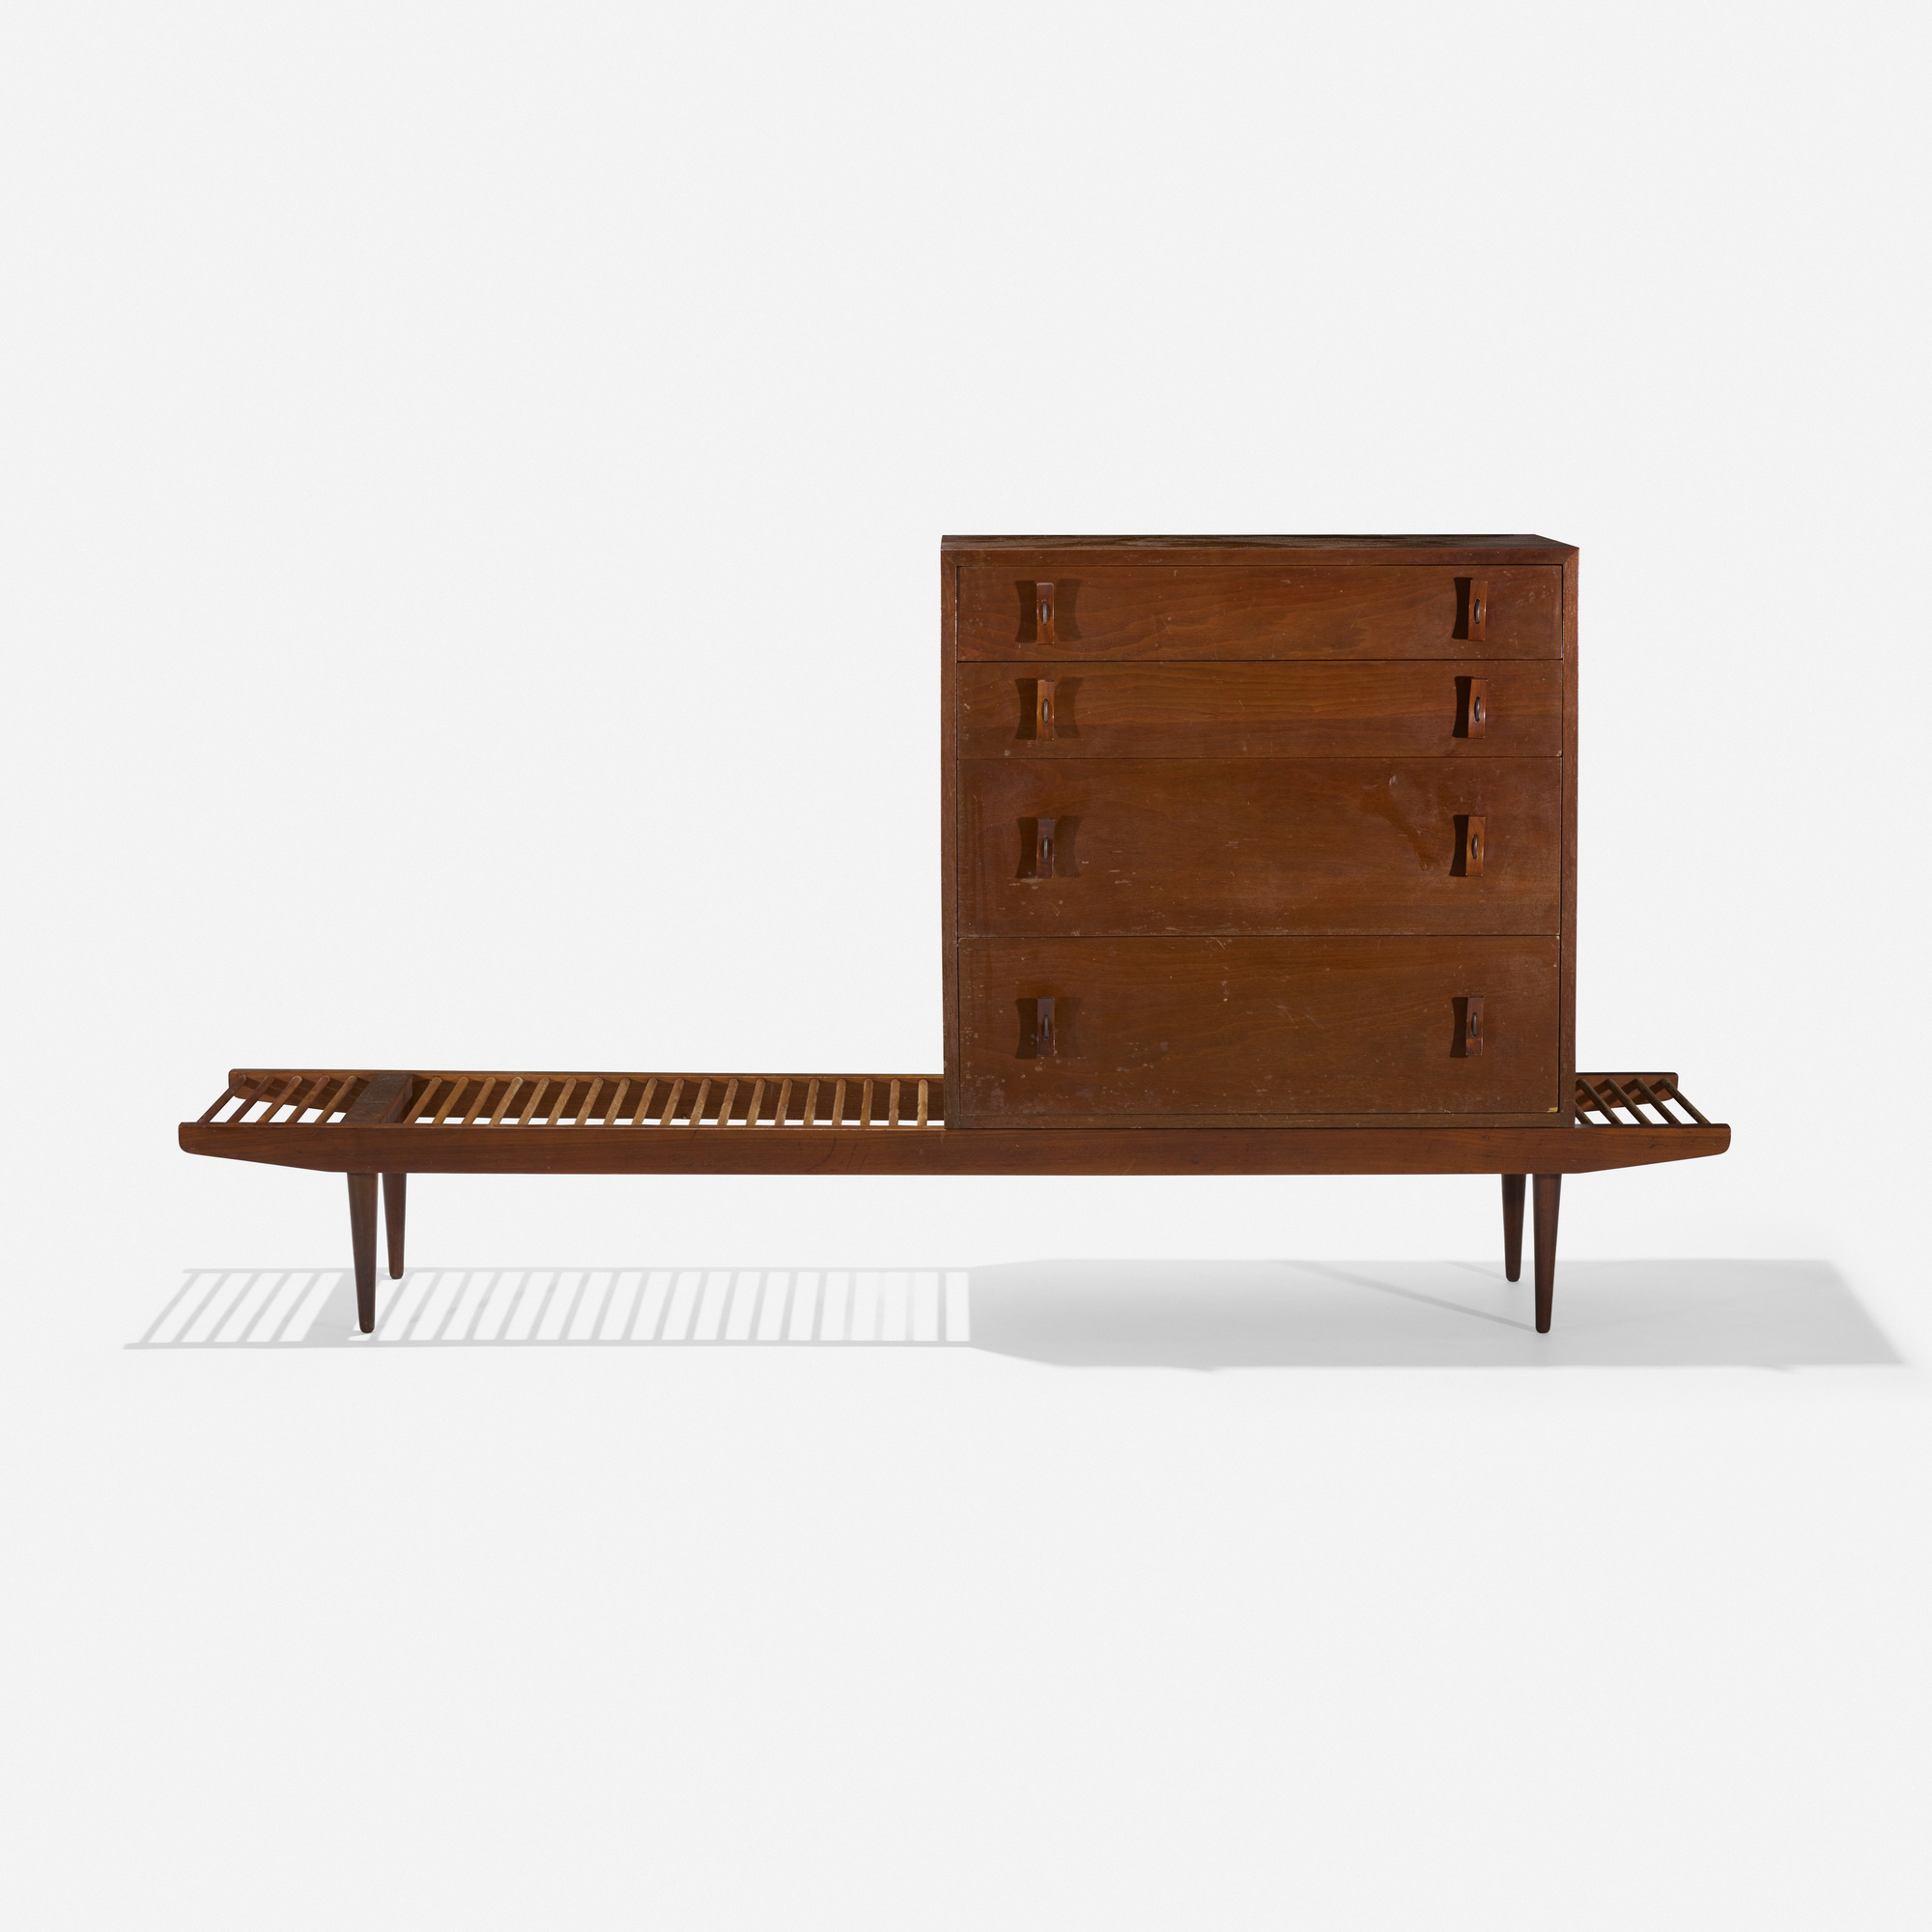 113: Milo Baughman and Stanley Young / bench with cabinet (1 of 3)